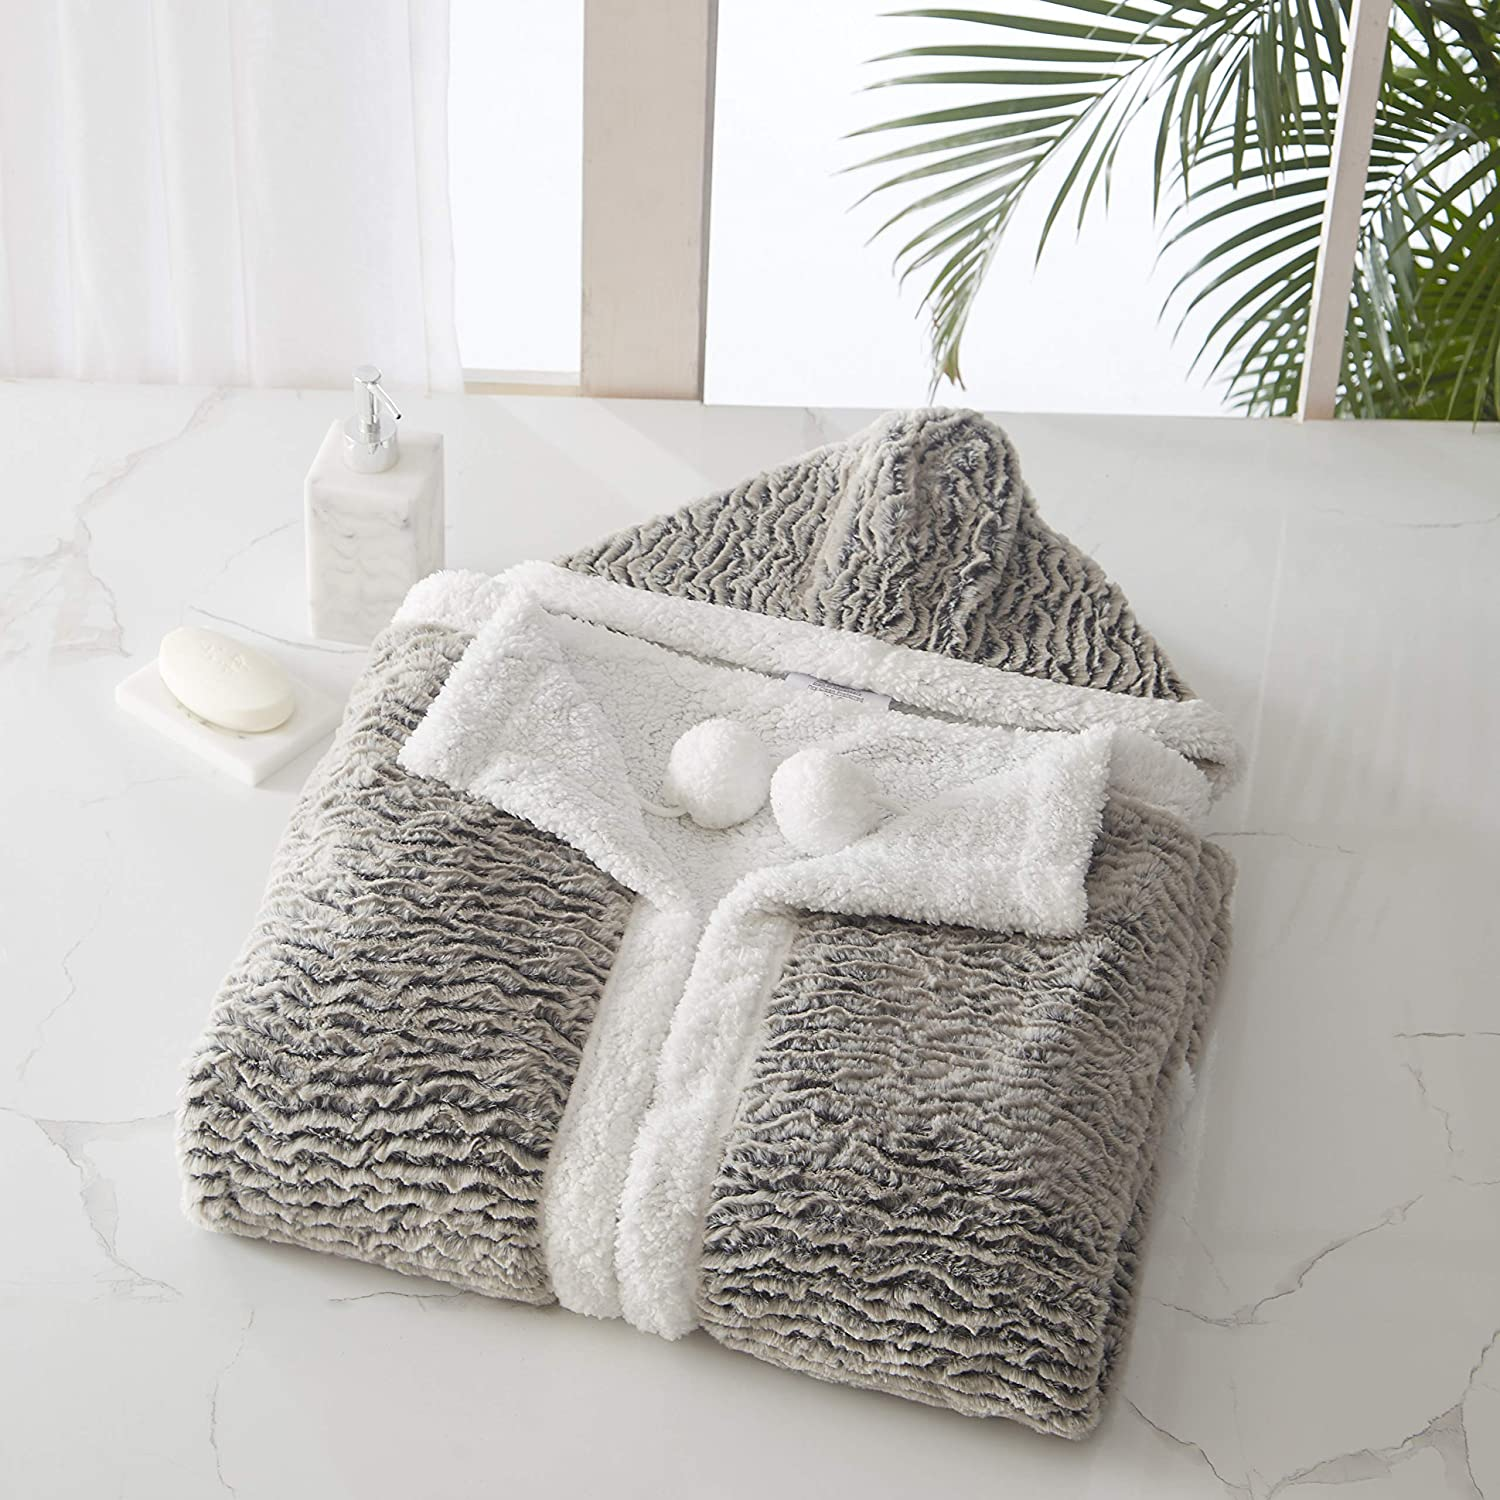 """Chic Home Brighton Snuggle Hoodie Animal Pattern Robe Cozy Super Soft Ultra Plush Micromink Coral Fleece Sherpa Lined Wearable Blanket with 2 Pockets Hood Drawstring Closure, 51"""" x 71"""""""